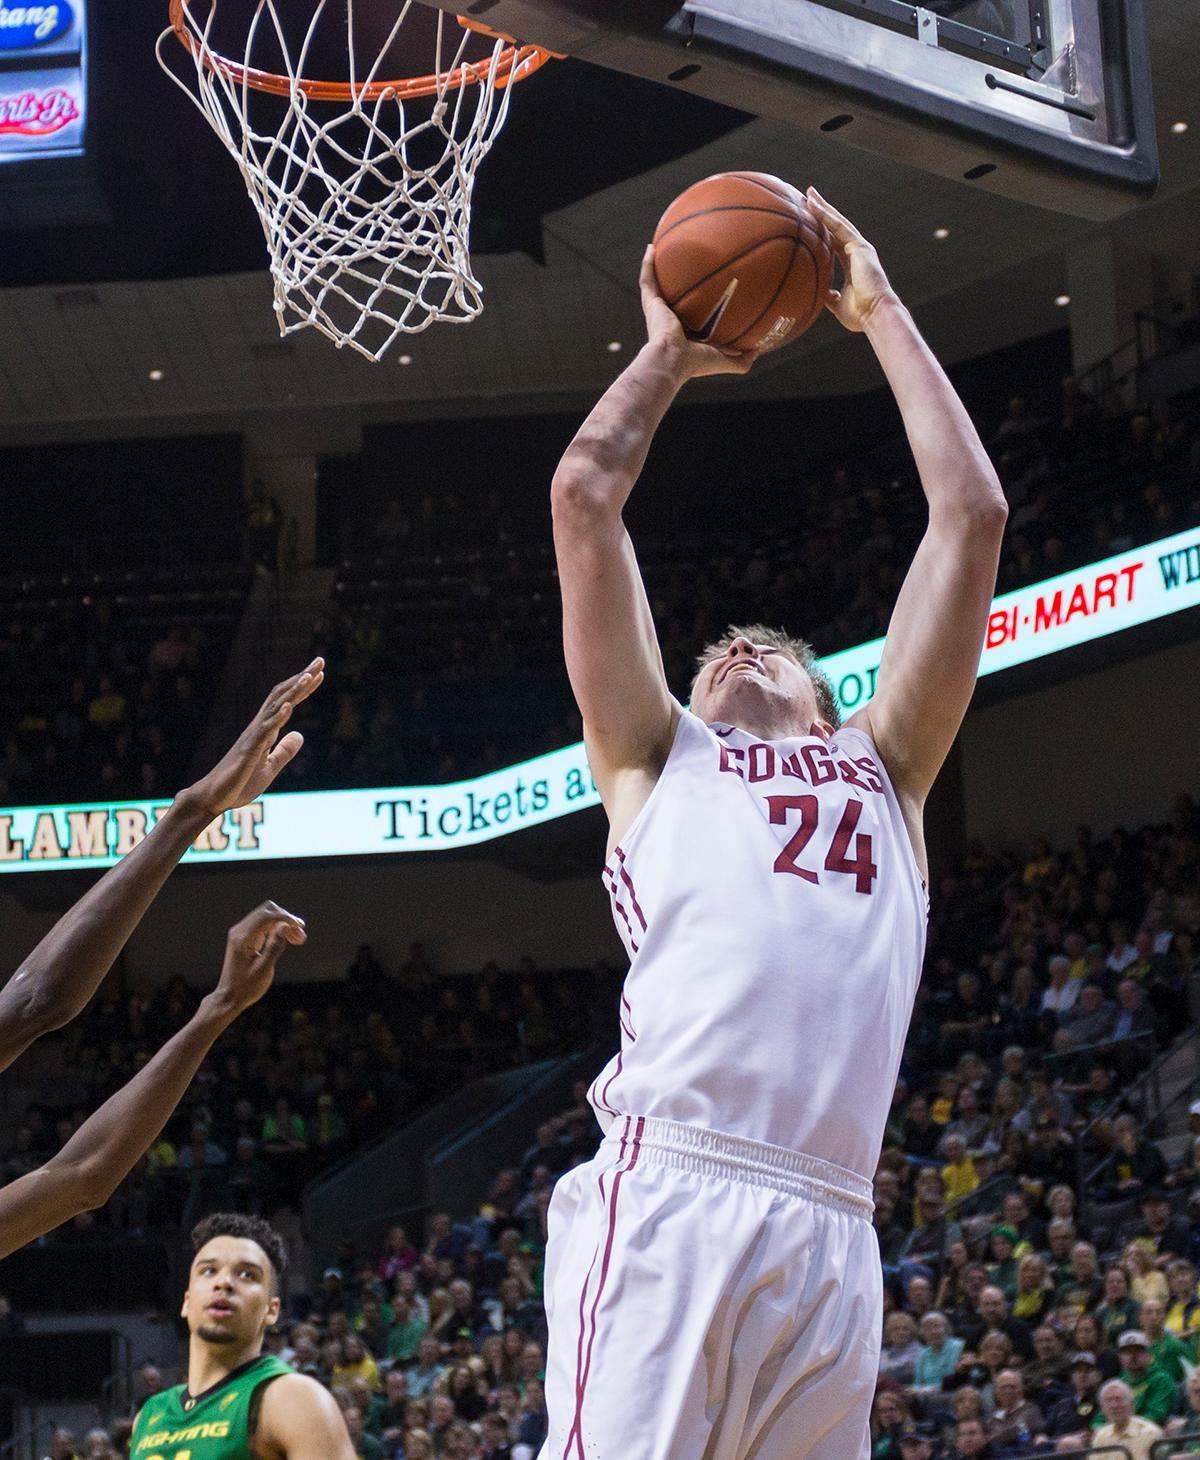 Washington State Cougars' Josh Hawkinson (#24) attempts a basket during the game against the Oregon Ducks. The Ducks beat the Cougars 76-62. Kianna Cabuco, Oregon News Lab